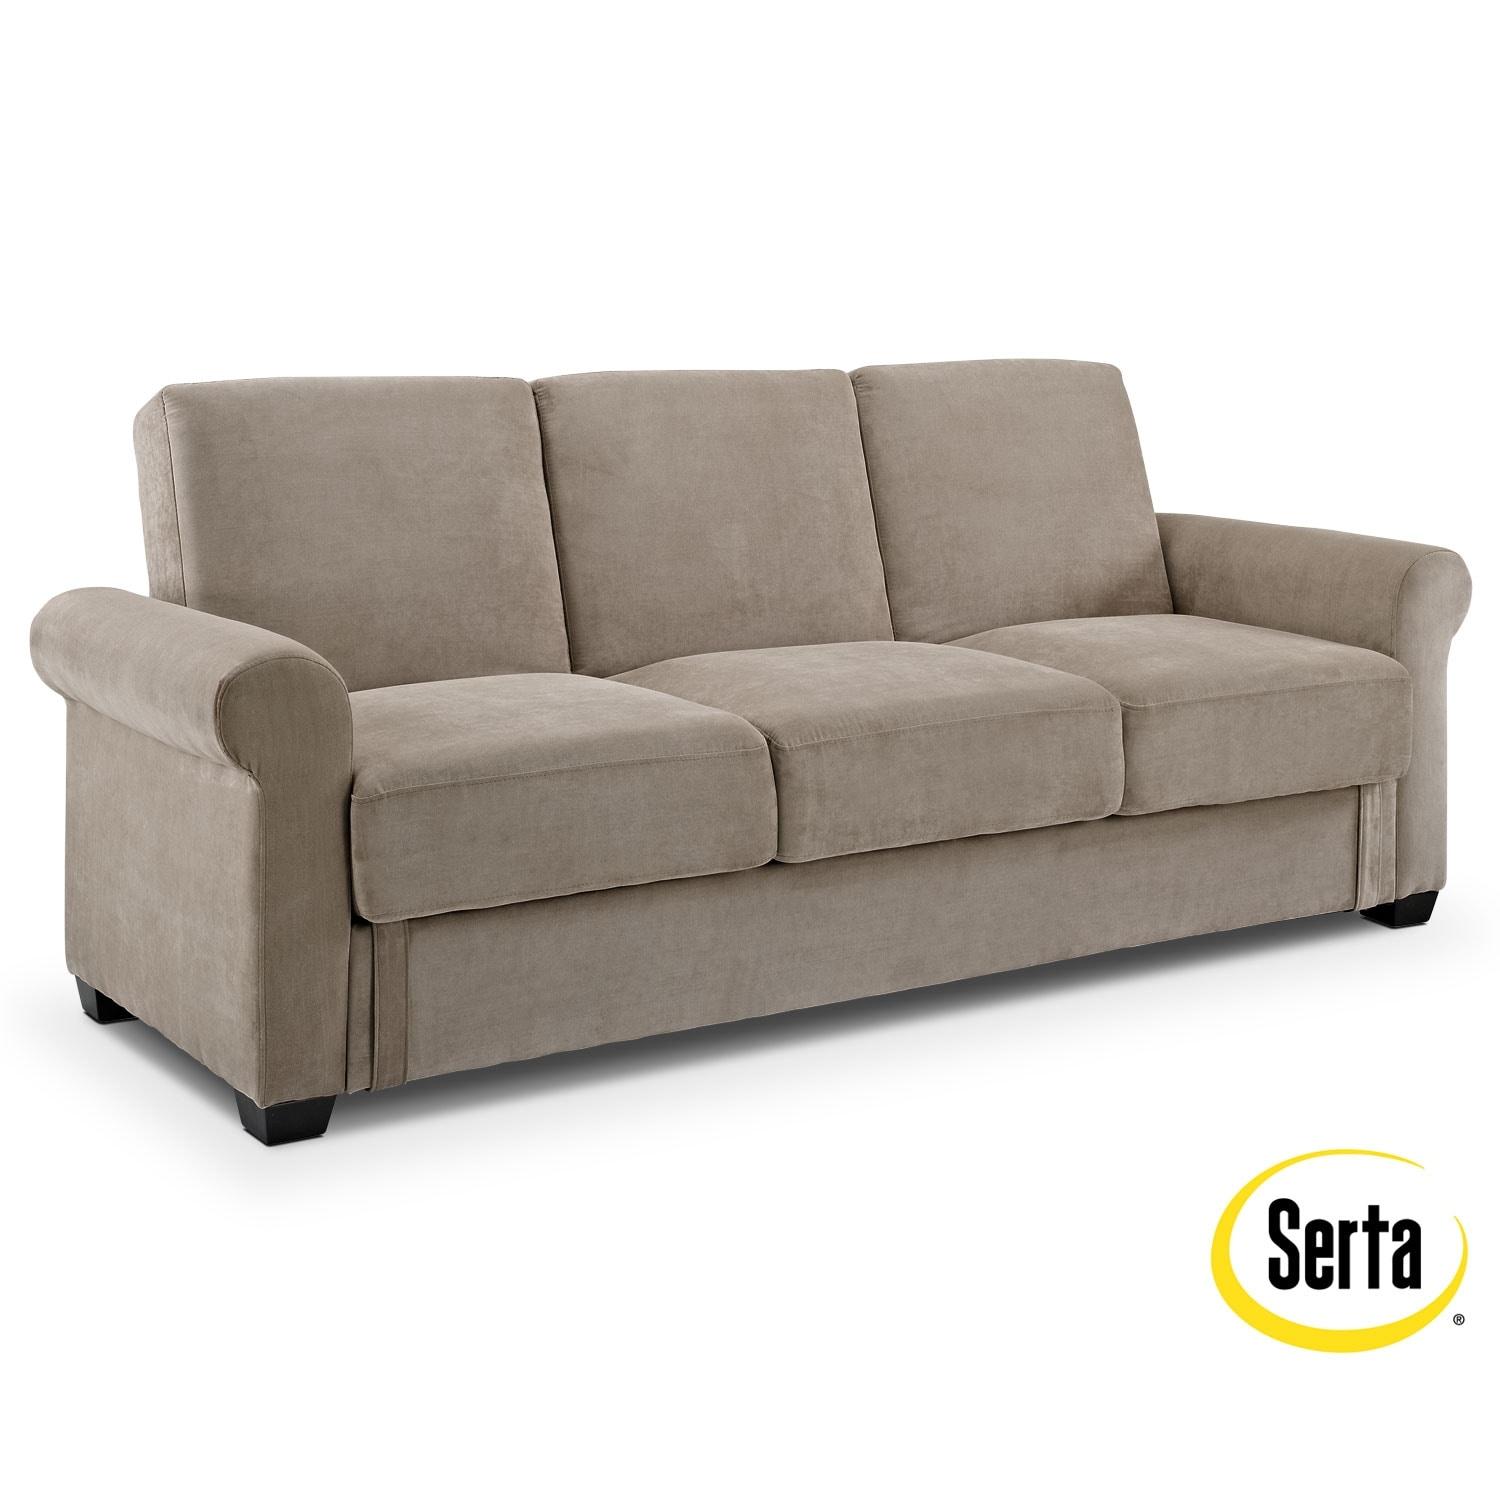 futon sofa beds with storage | roselawnlutheran